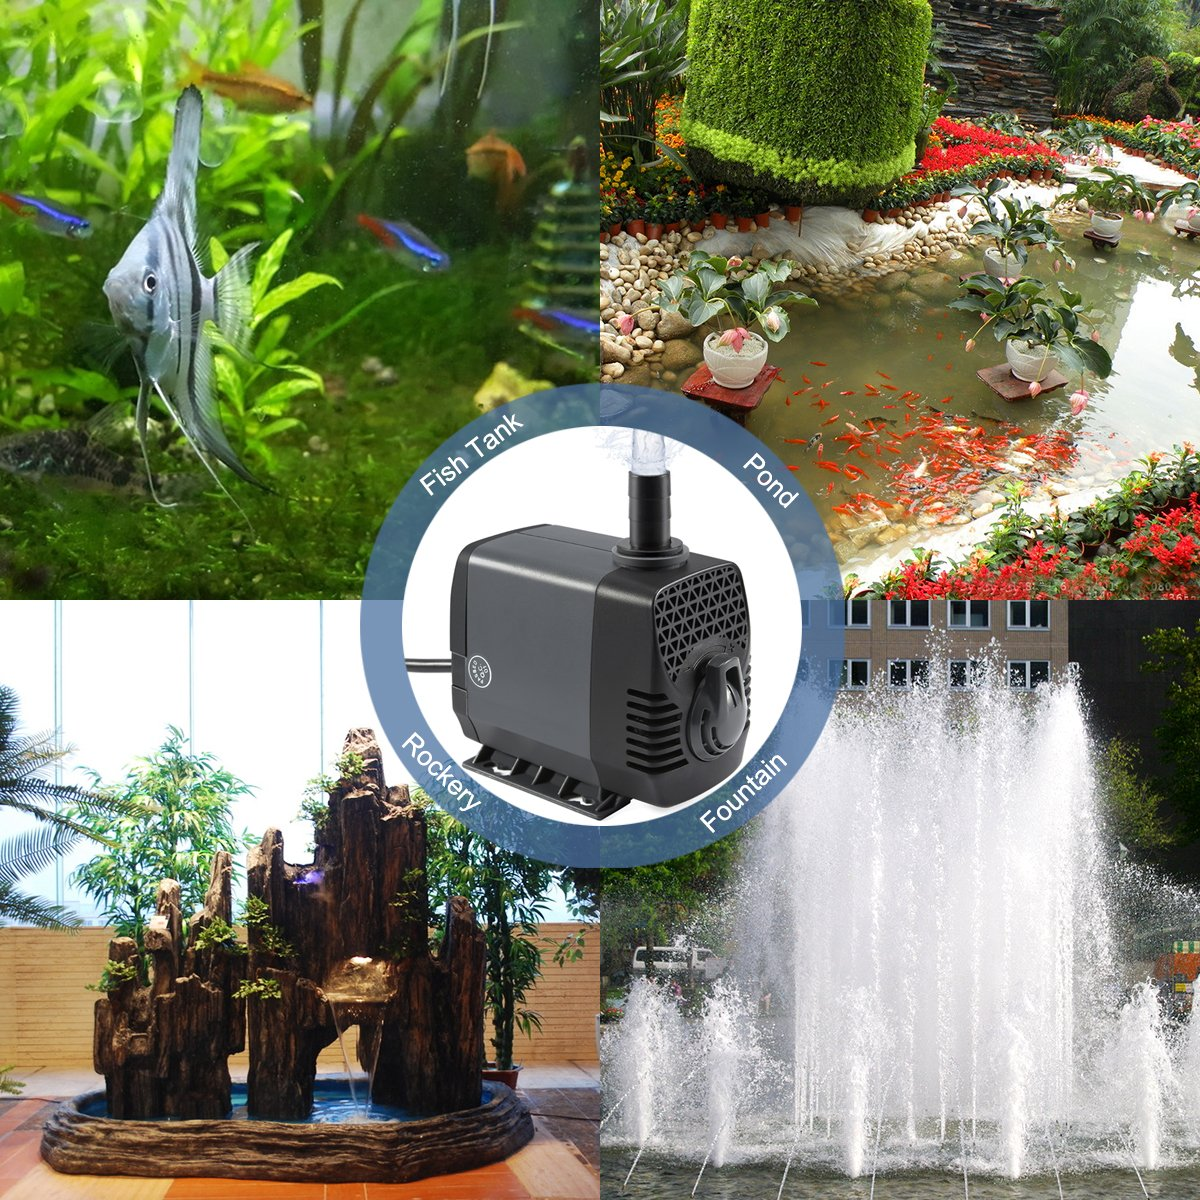 Ankway Upgraded 660GPH(2475L/H, 40W) Submersible Water Pump Humanized Rotation Switch with 3 Nozzles for Pond, Aquarium, Fish Tank Fountain Water Pump Hydroponics, with 5.9ft (1.8M) Power Cord by Ankway (Image #6)